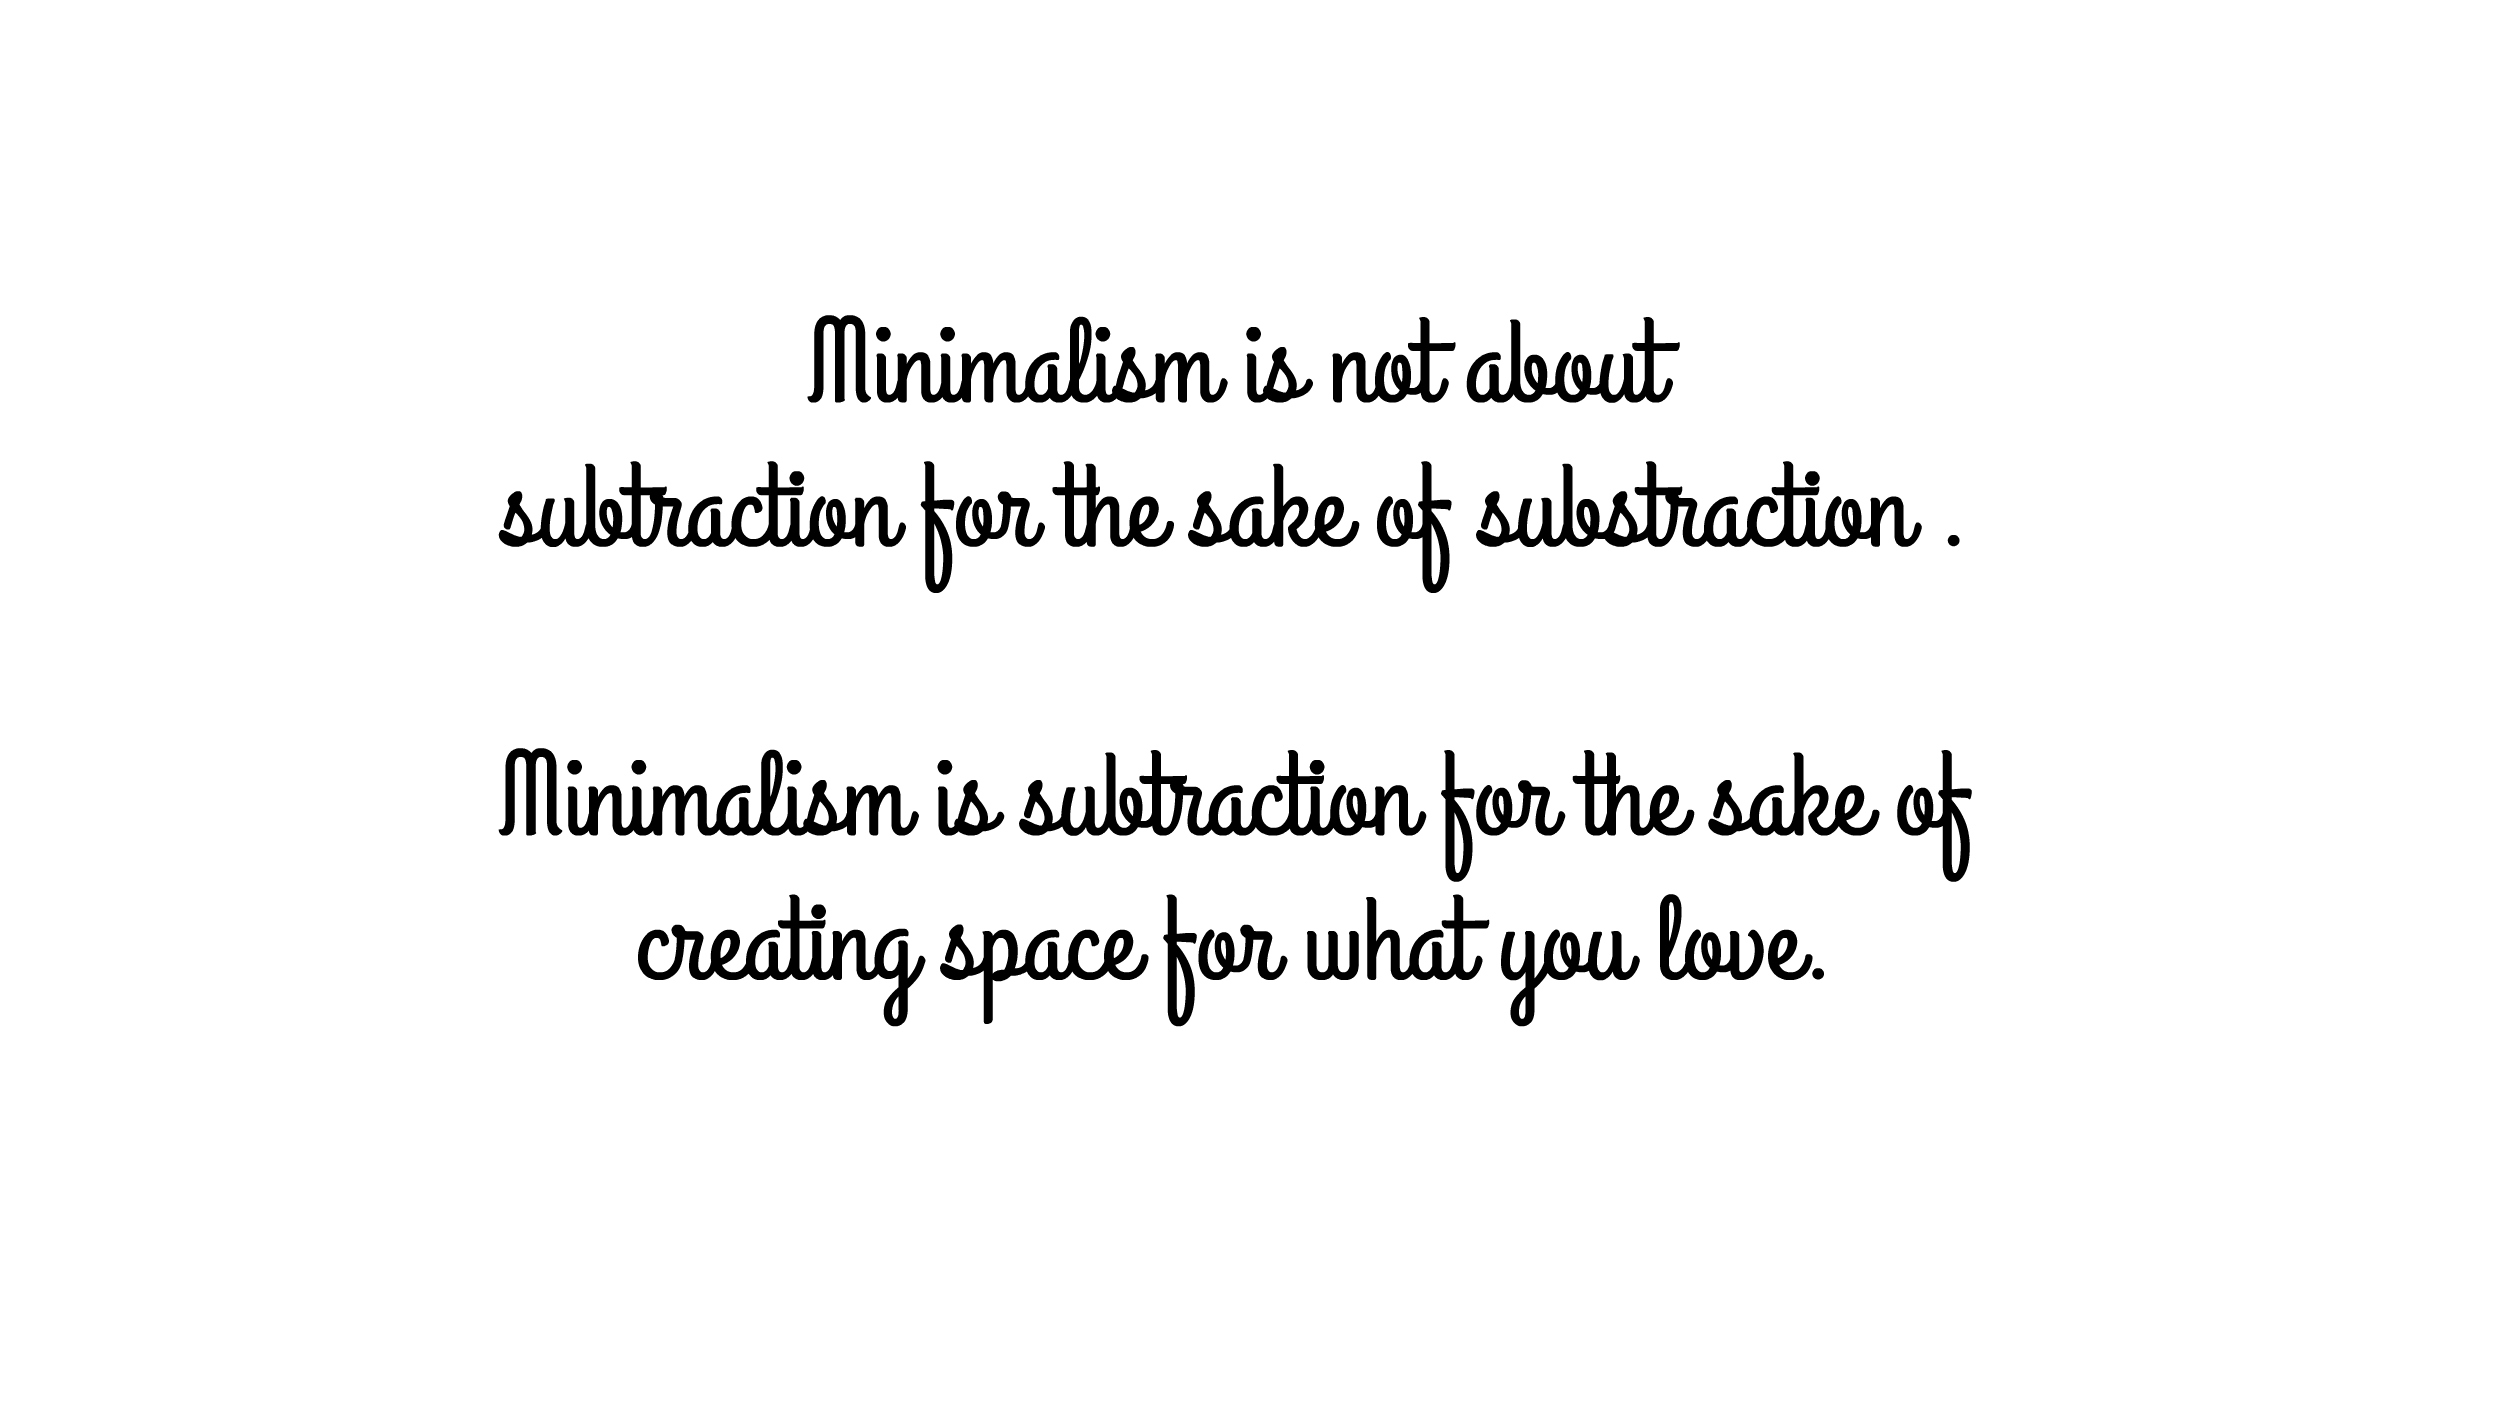 minimalism-is-not-about-subtraction-for-the-sake-of-subtraction